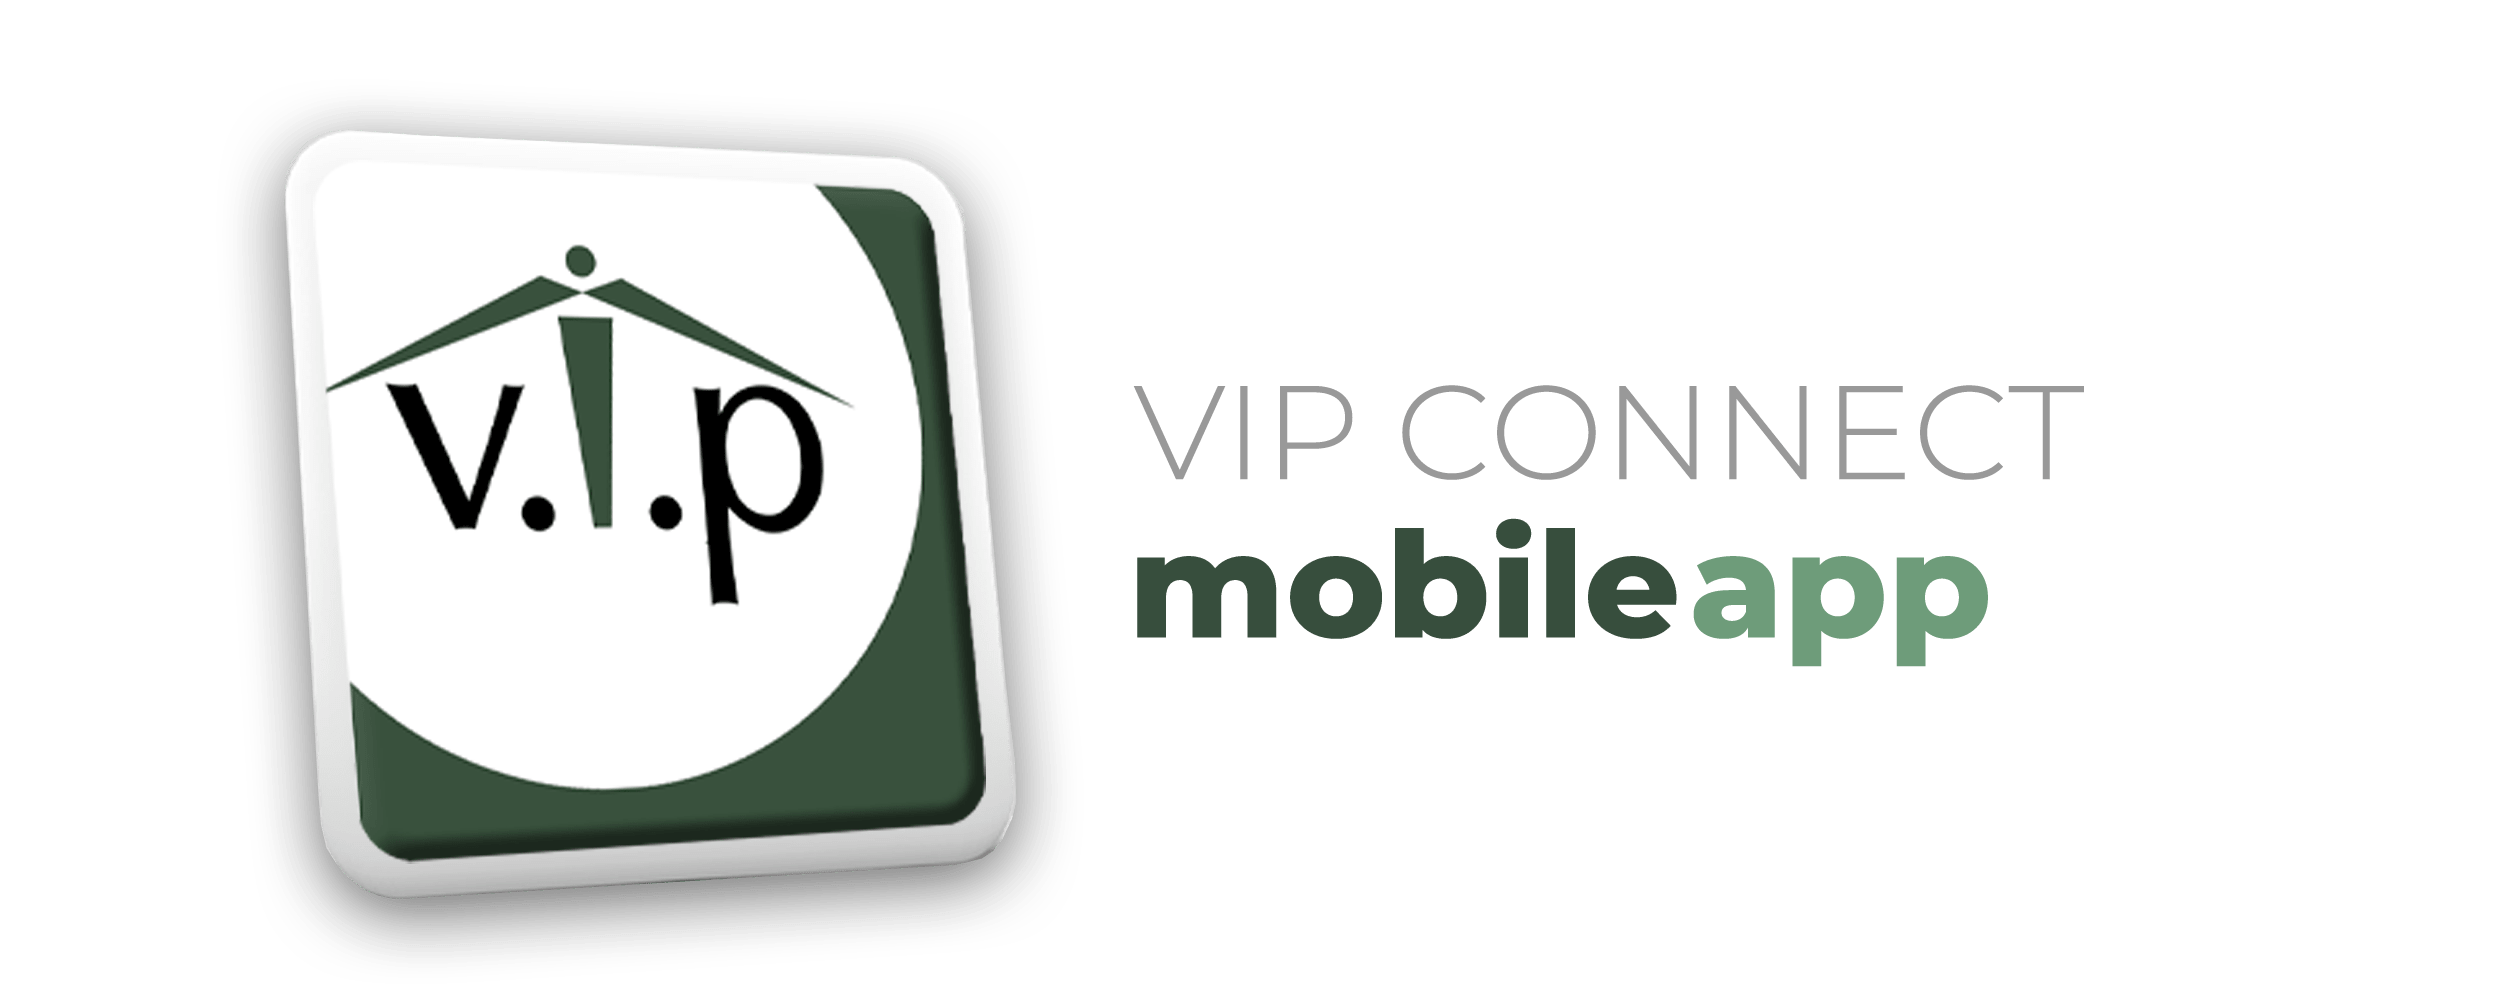 vip connect